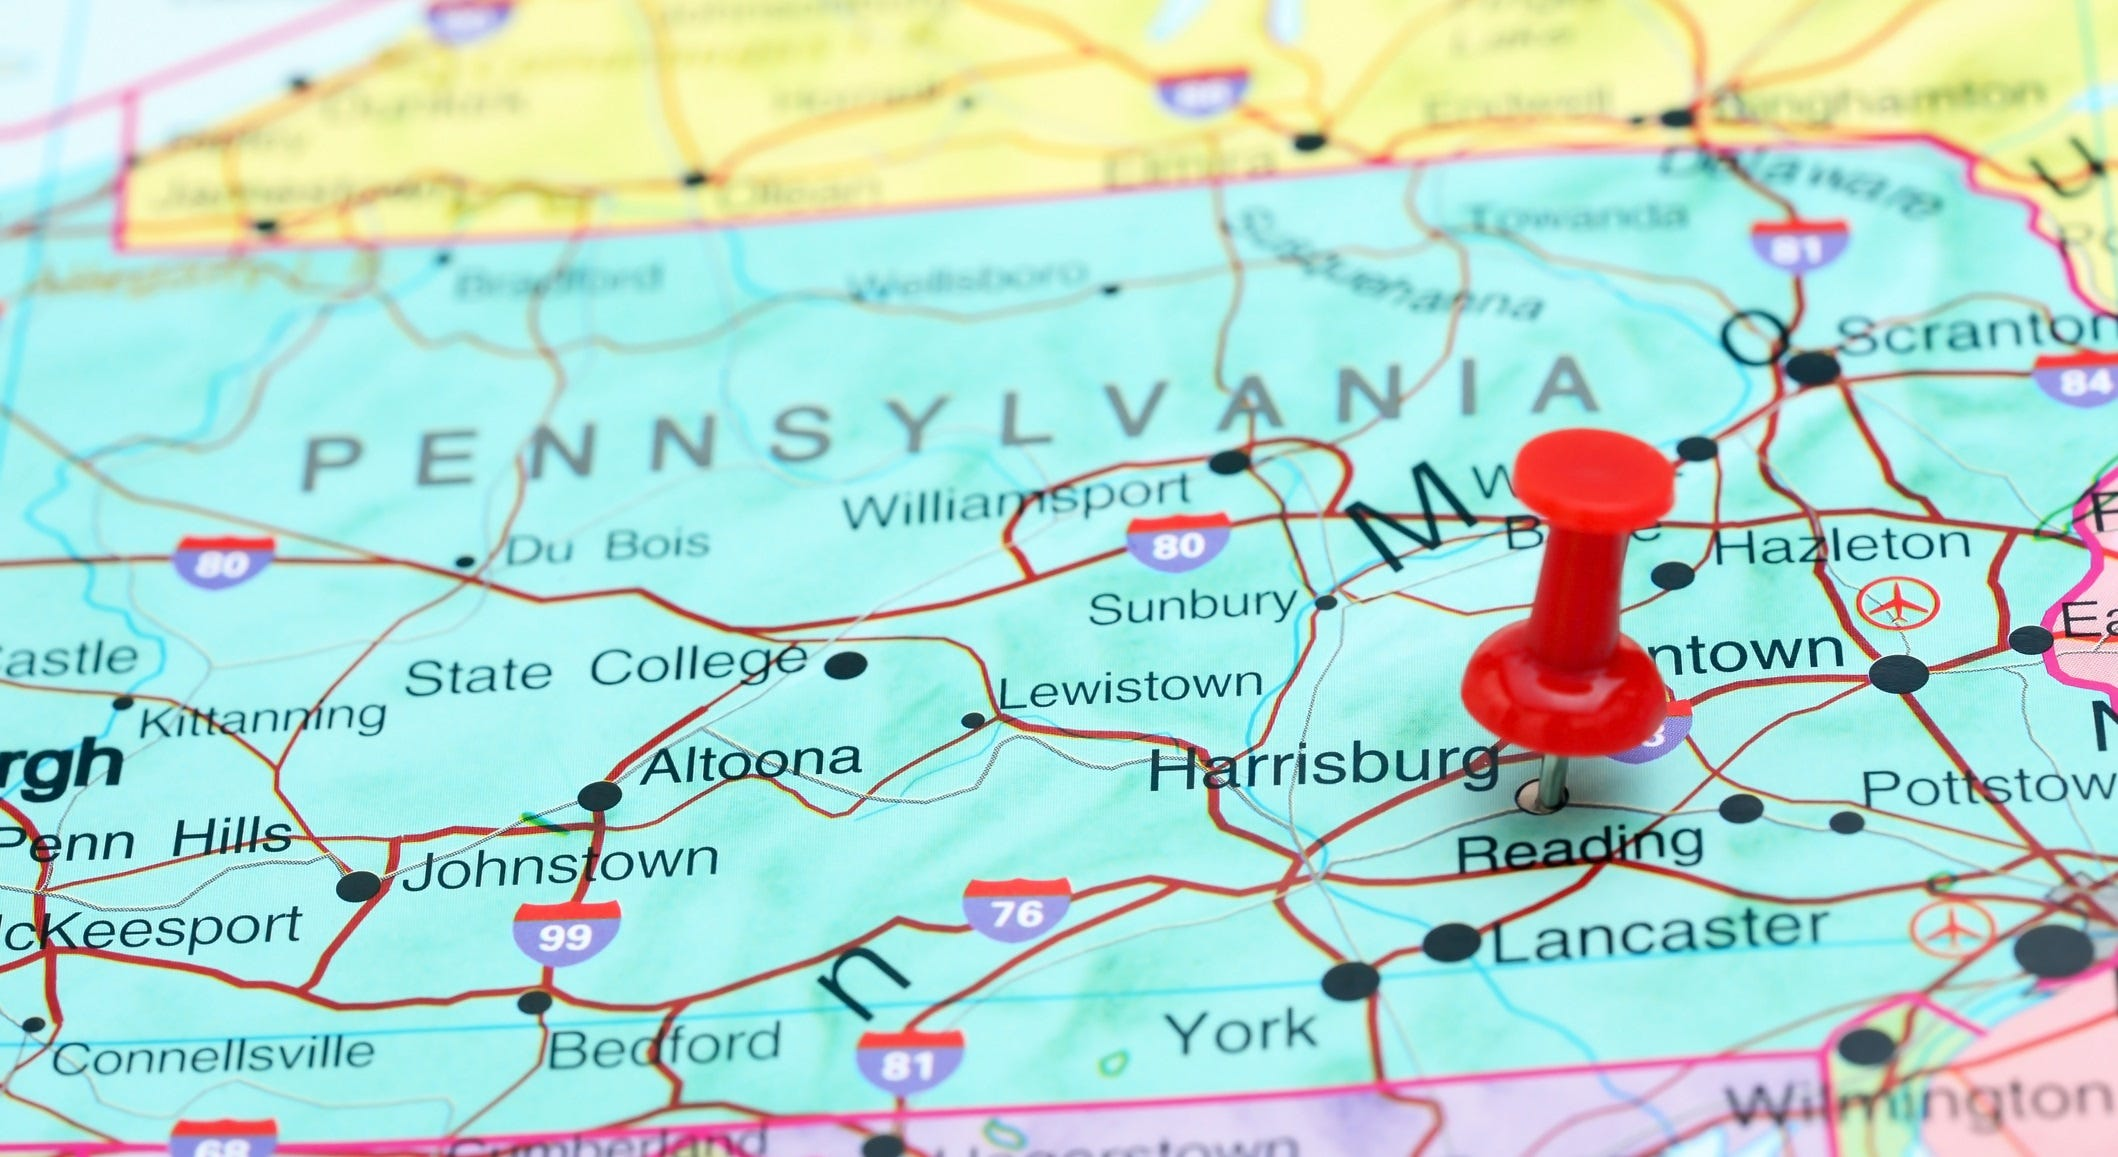 Court allows Pa to redraw district map